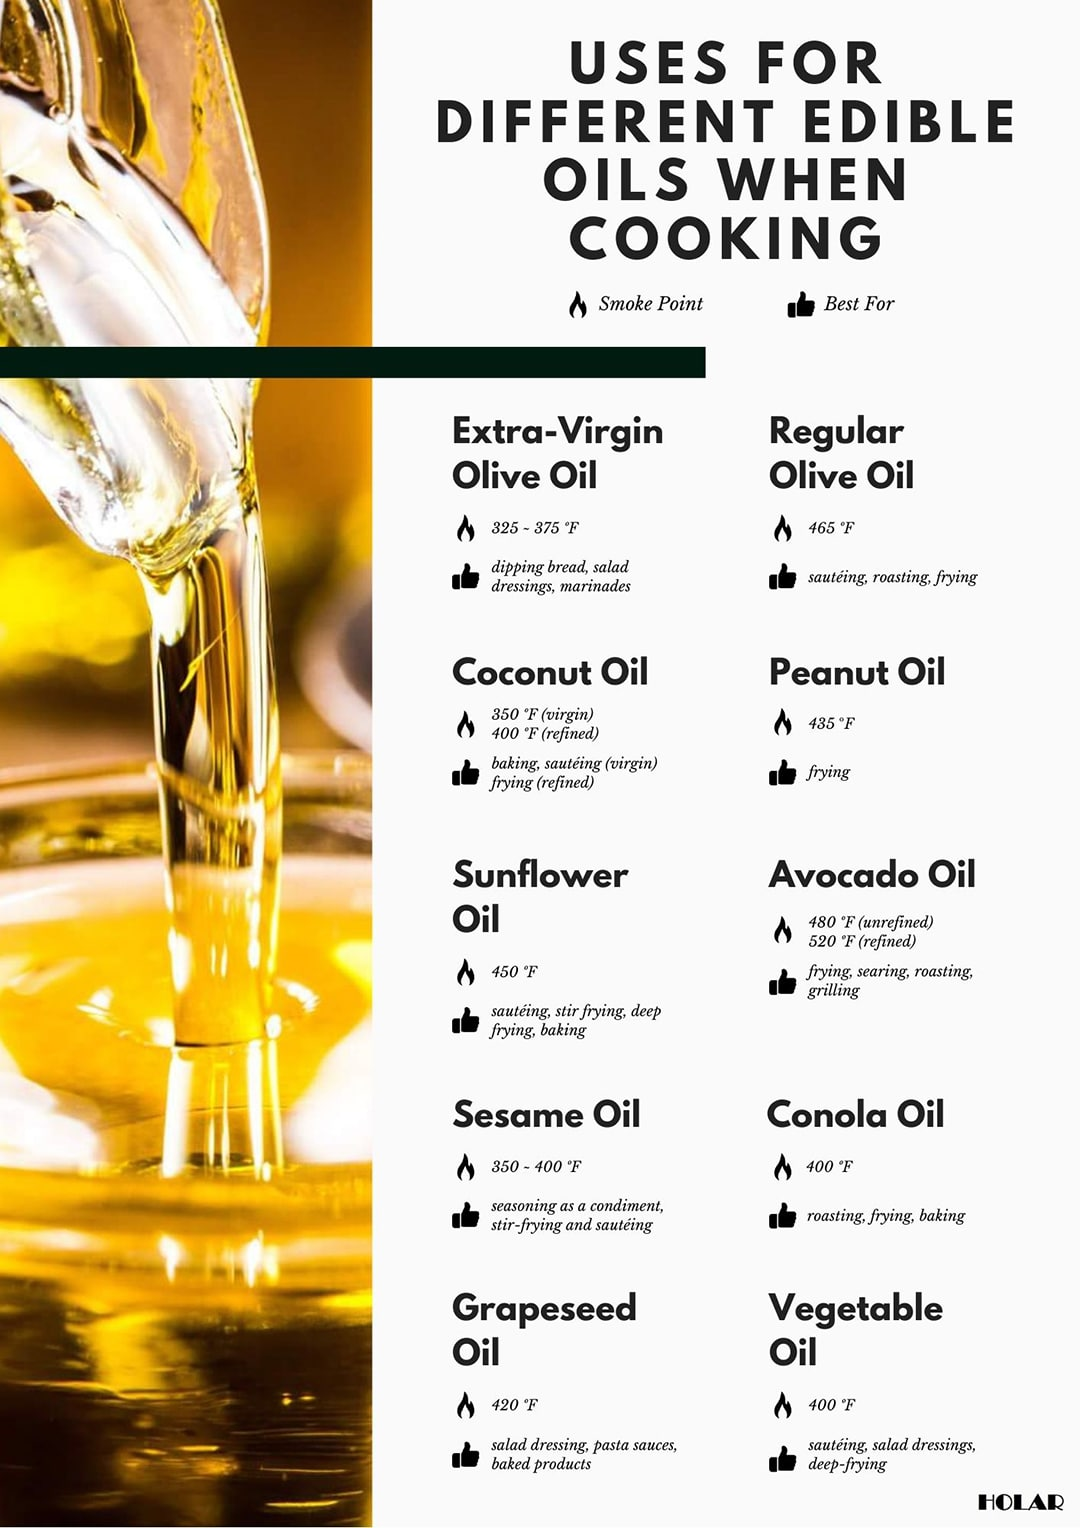 Holar - Blog Infographic - What are the uses for different edible oils when cooking